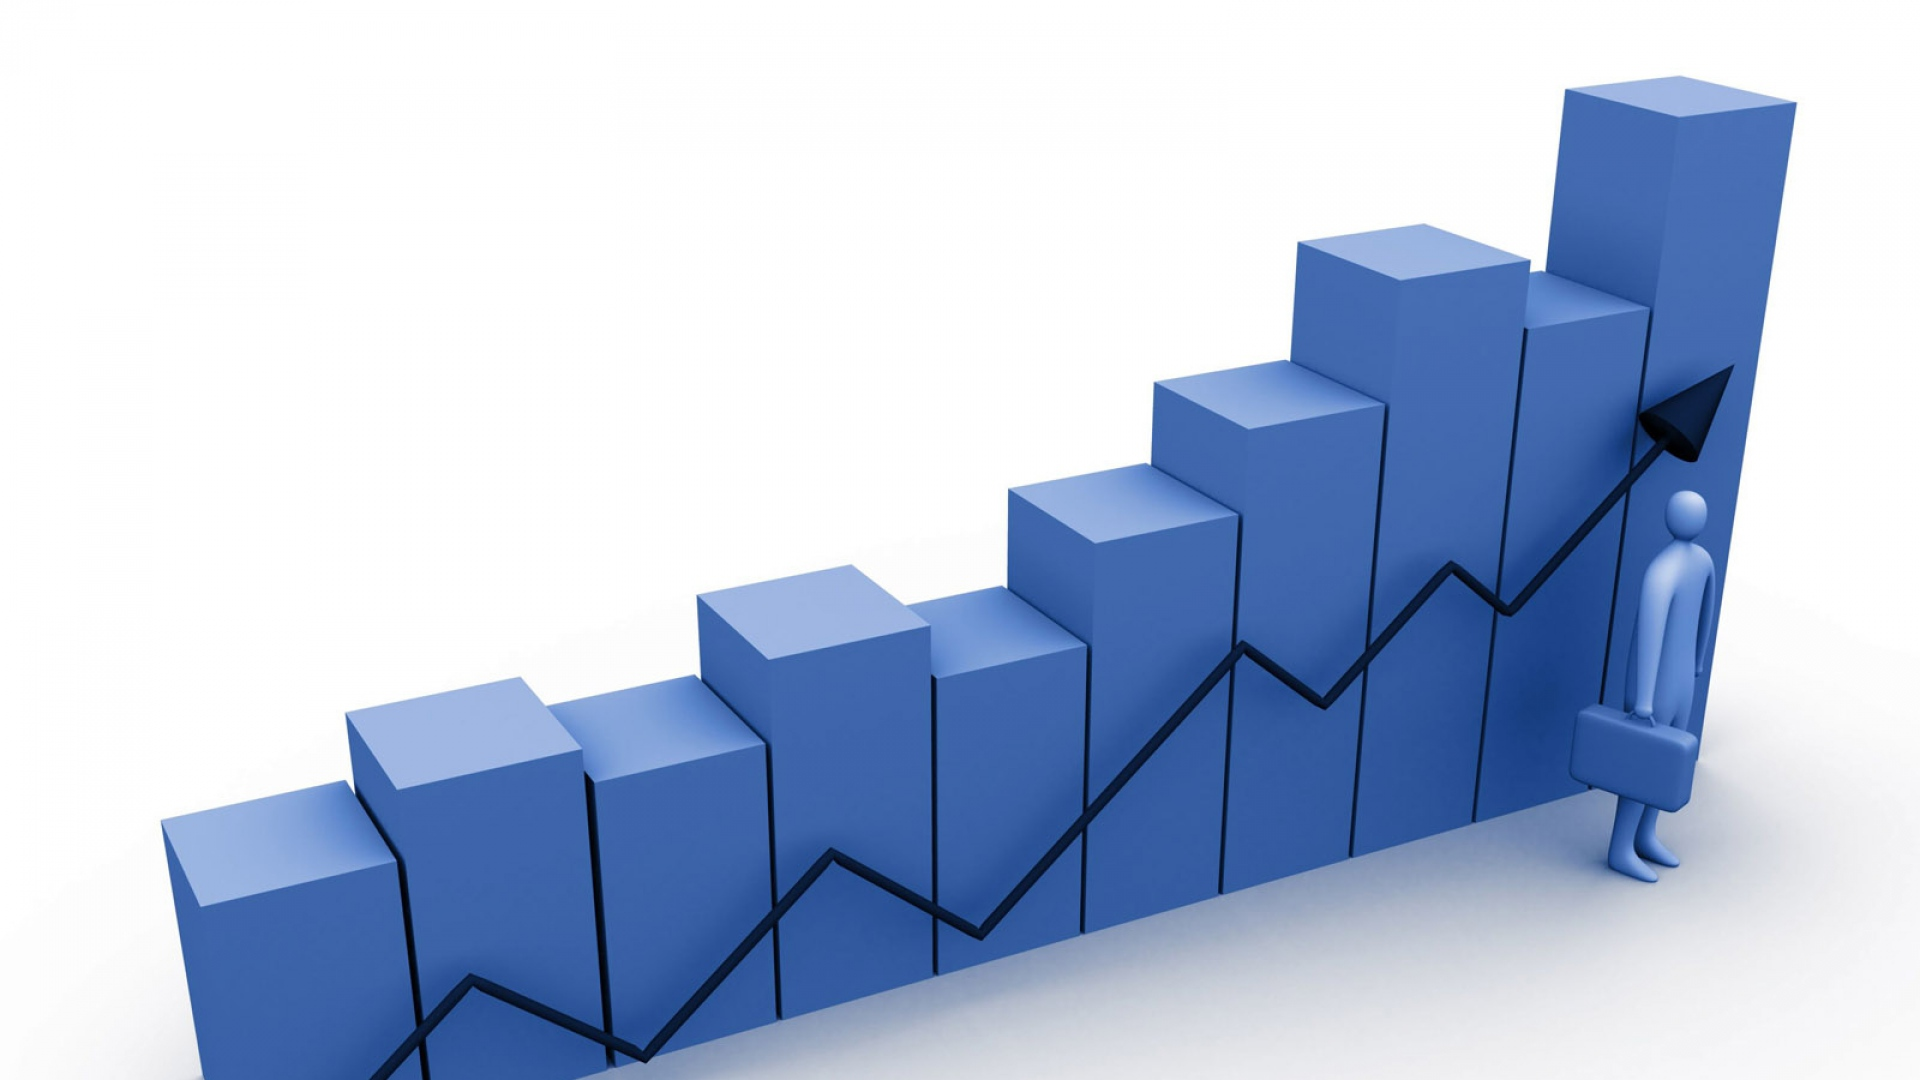 Download wallpaper x growing. Chart clipart growth picture freeuse stock